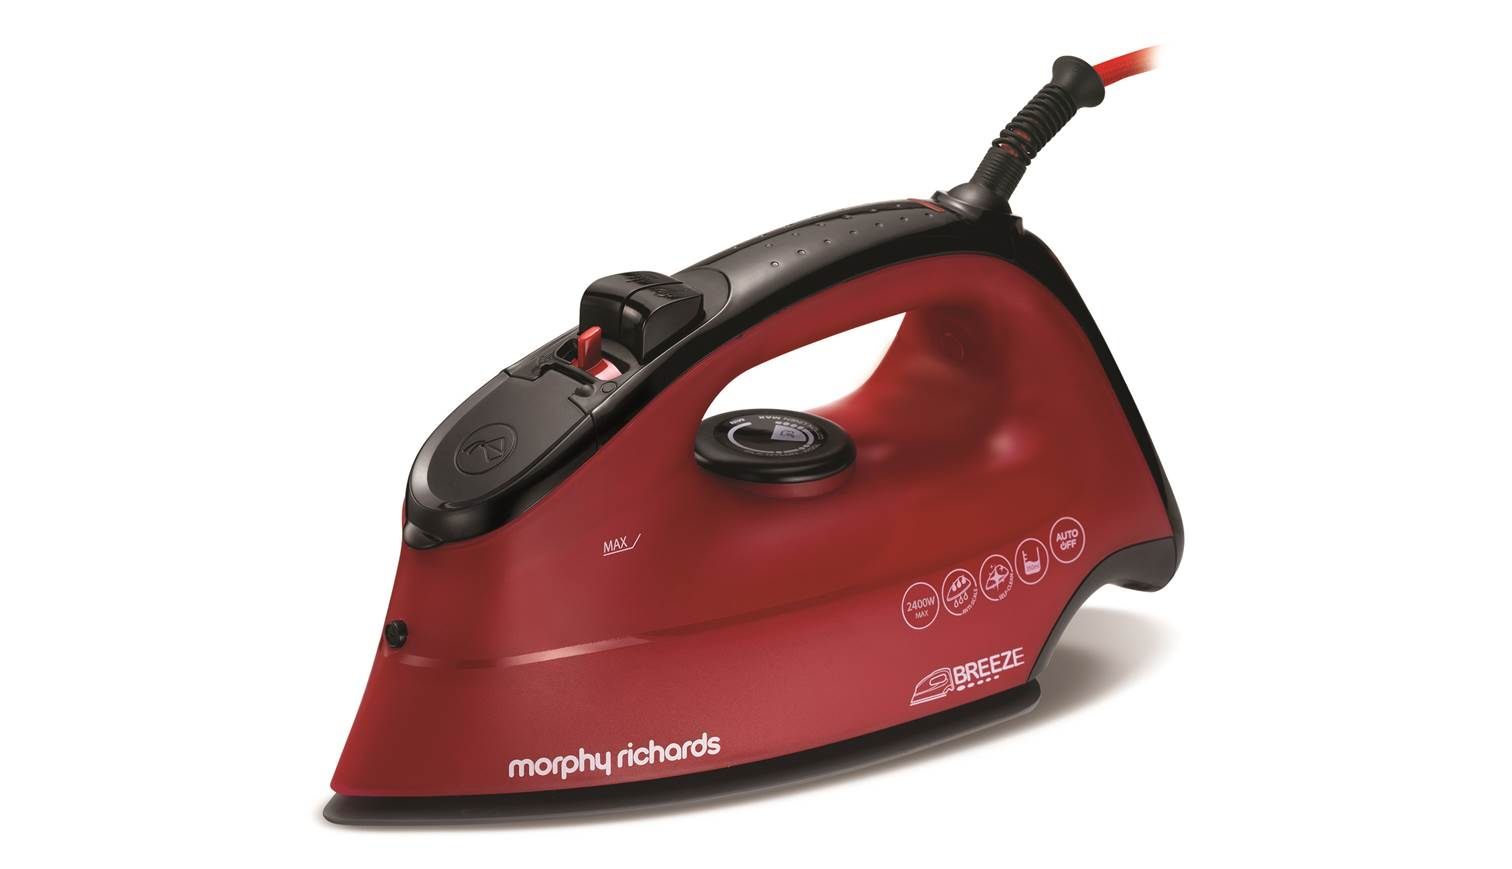 Iron Morphy richards 300259 Red, 2400 W, With cord, Continuous steam 45 g/min, Steam boost performance 120 g/min, Auto power off, Anti-drip function, Anti-scale system, Vertical steam function